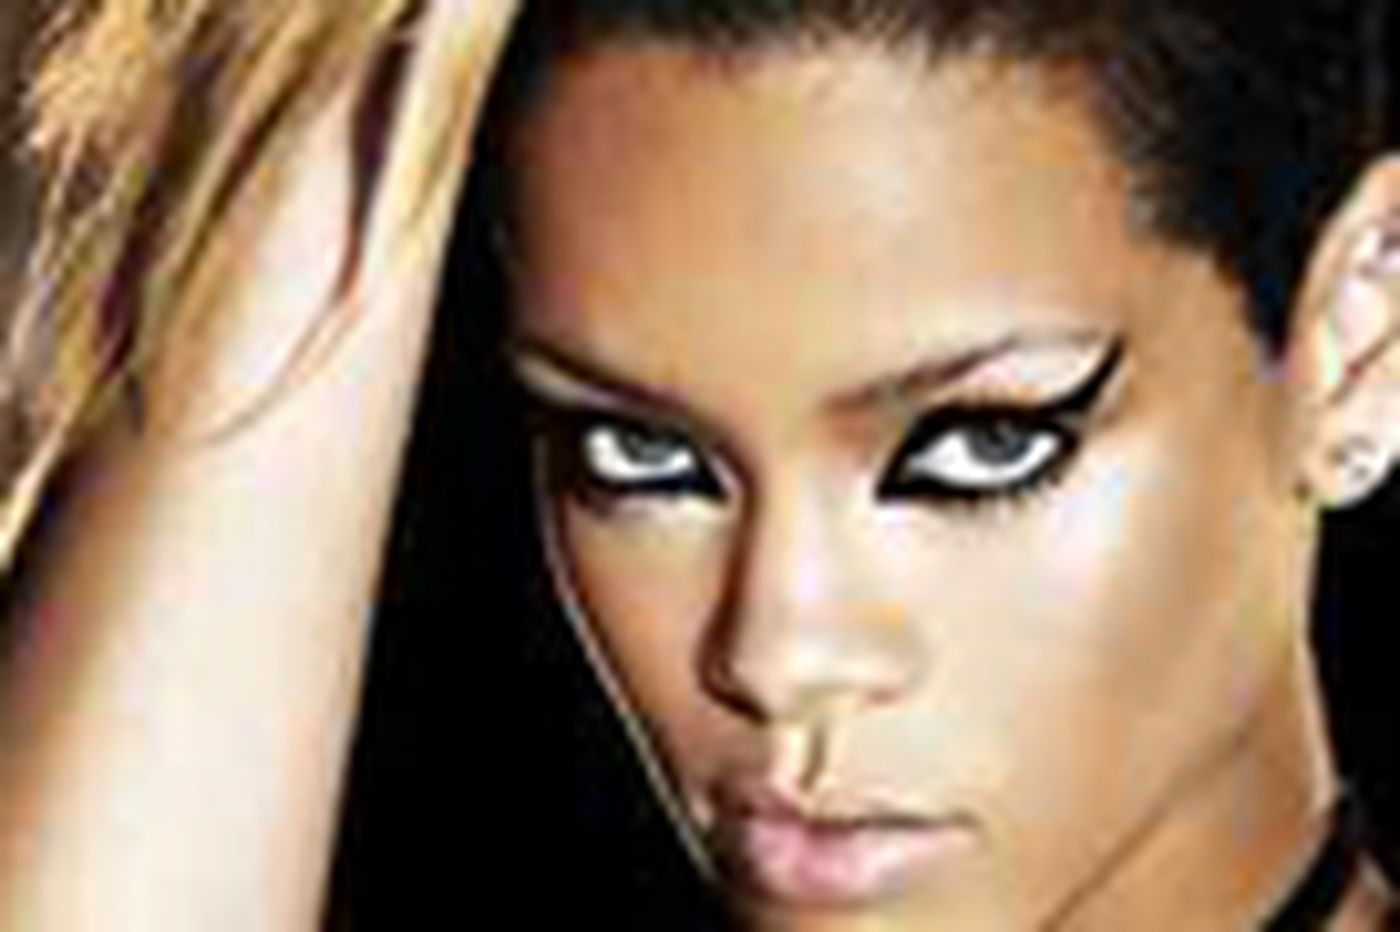 Touring Rihanna shows she's unwilling to play victim